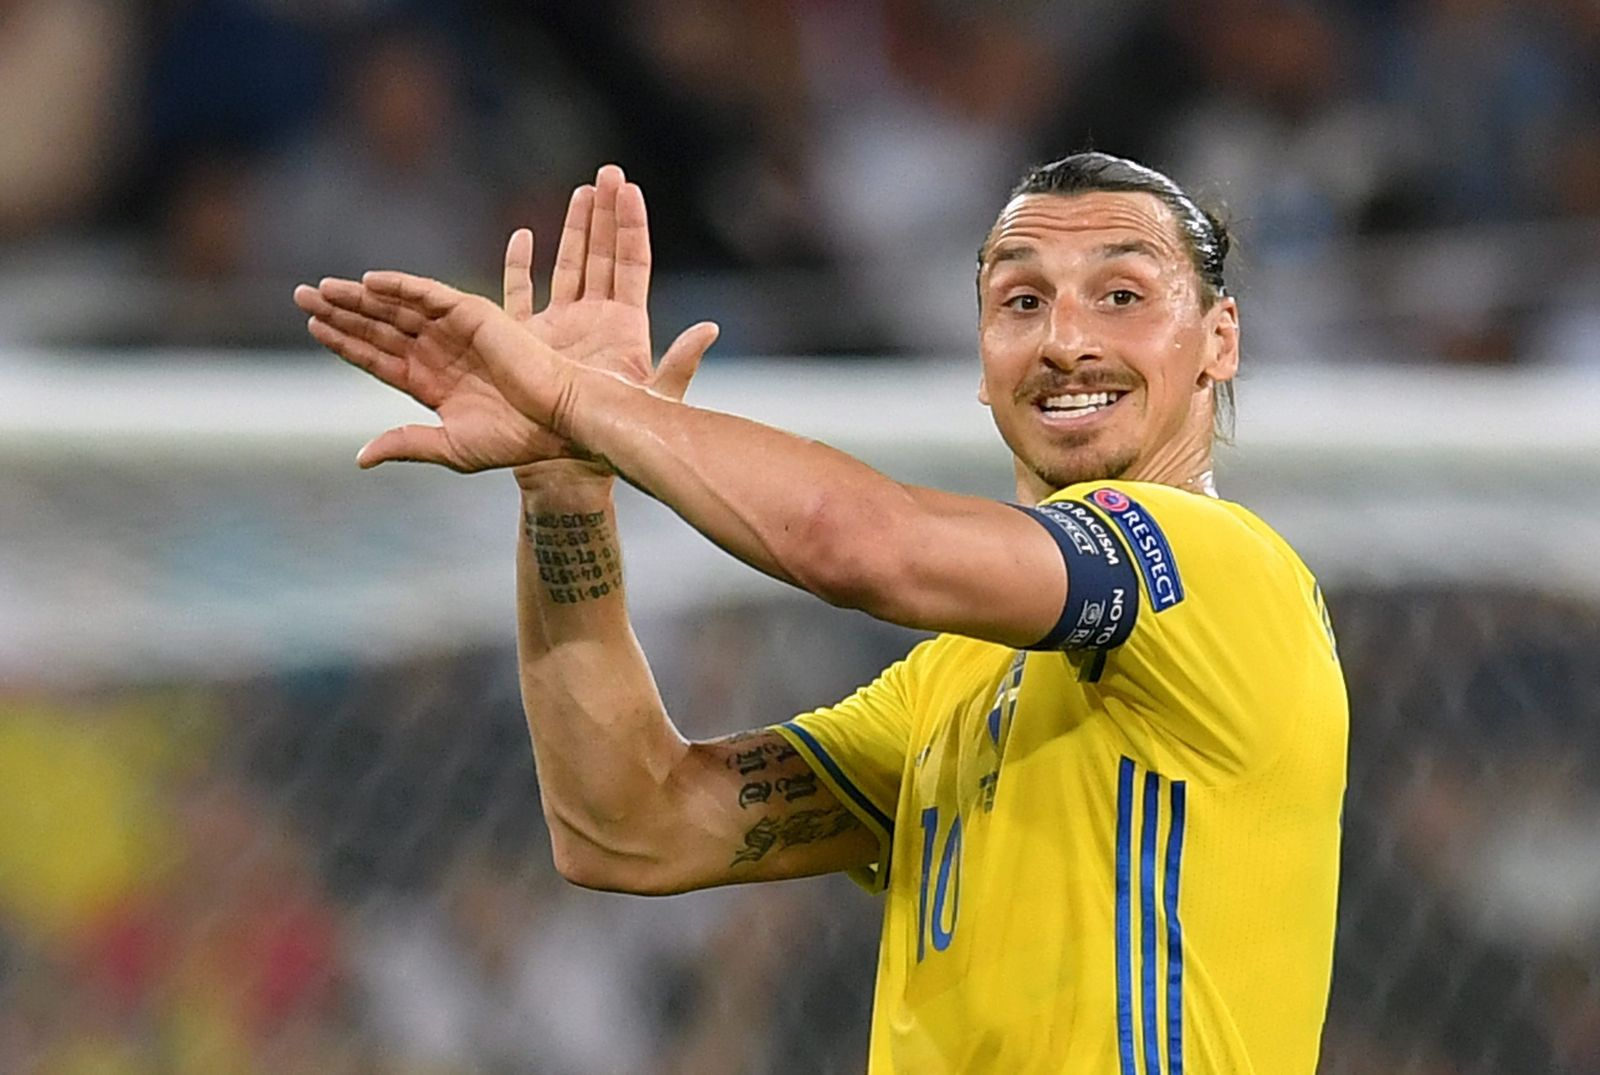 Ibrahimovic joins Manchester United